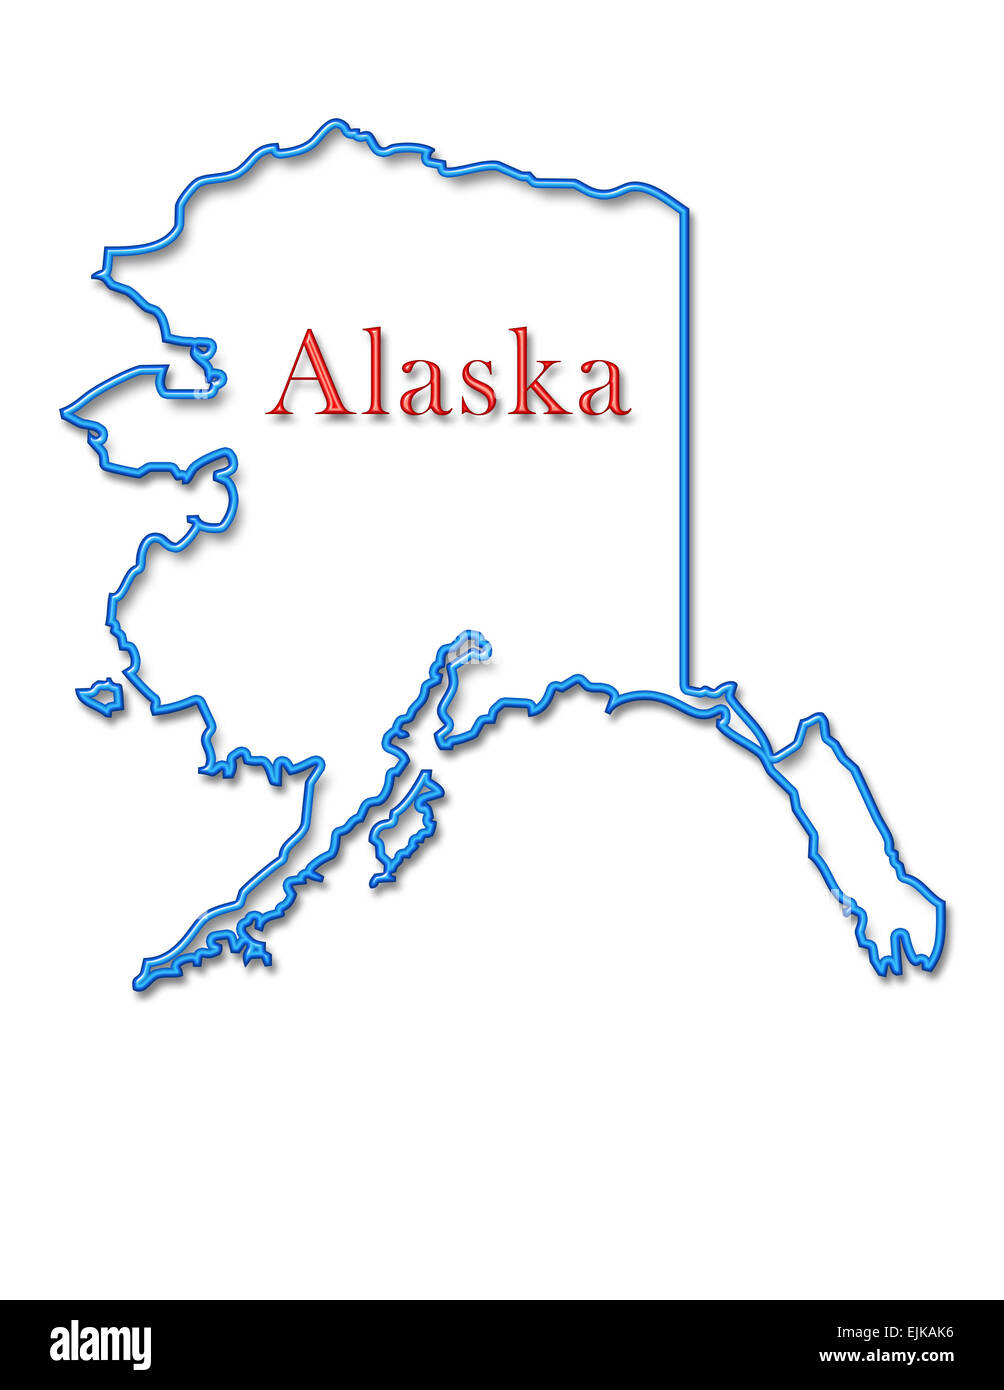 Alaska Map With Neon Blue Outline And Red Lettering Stock Photo